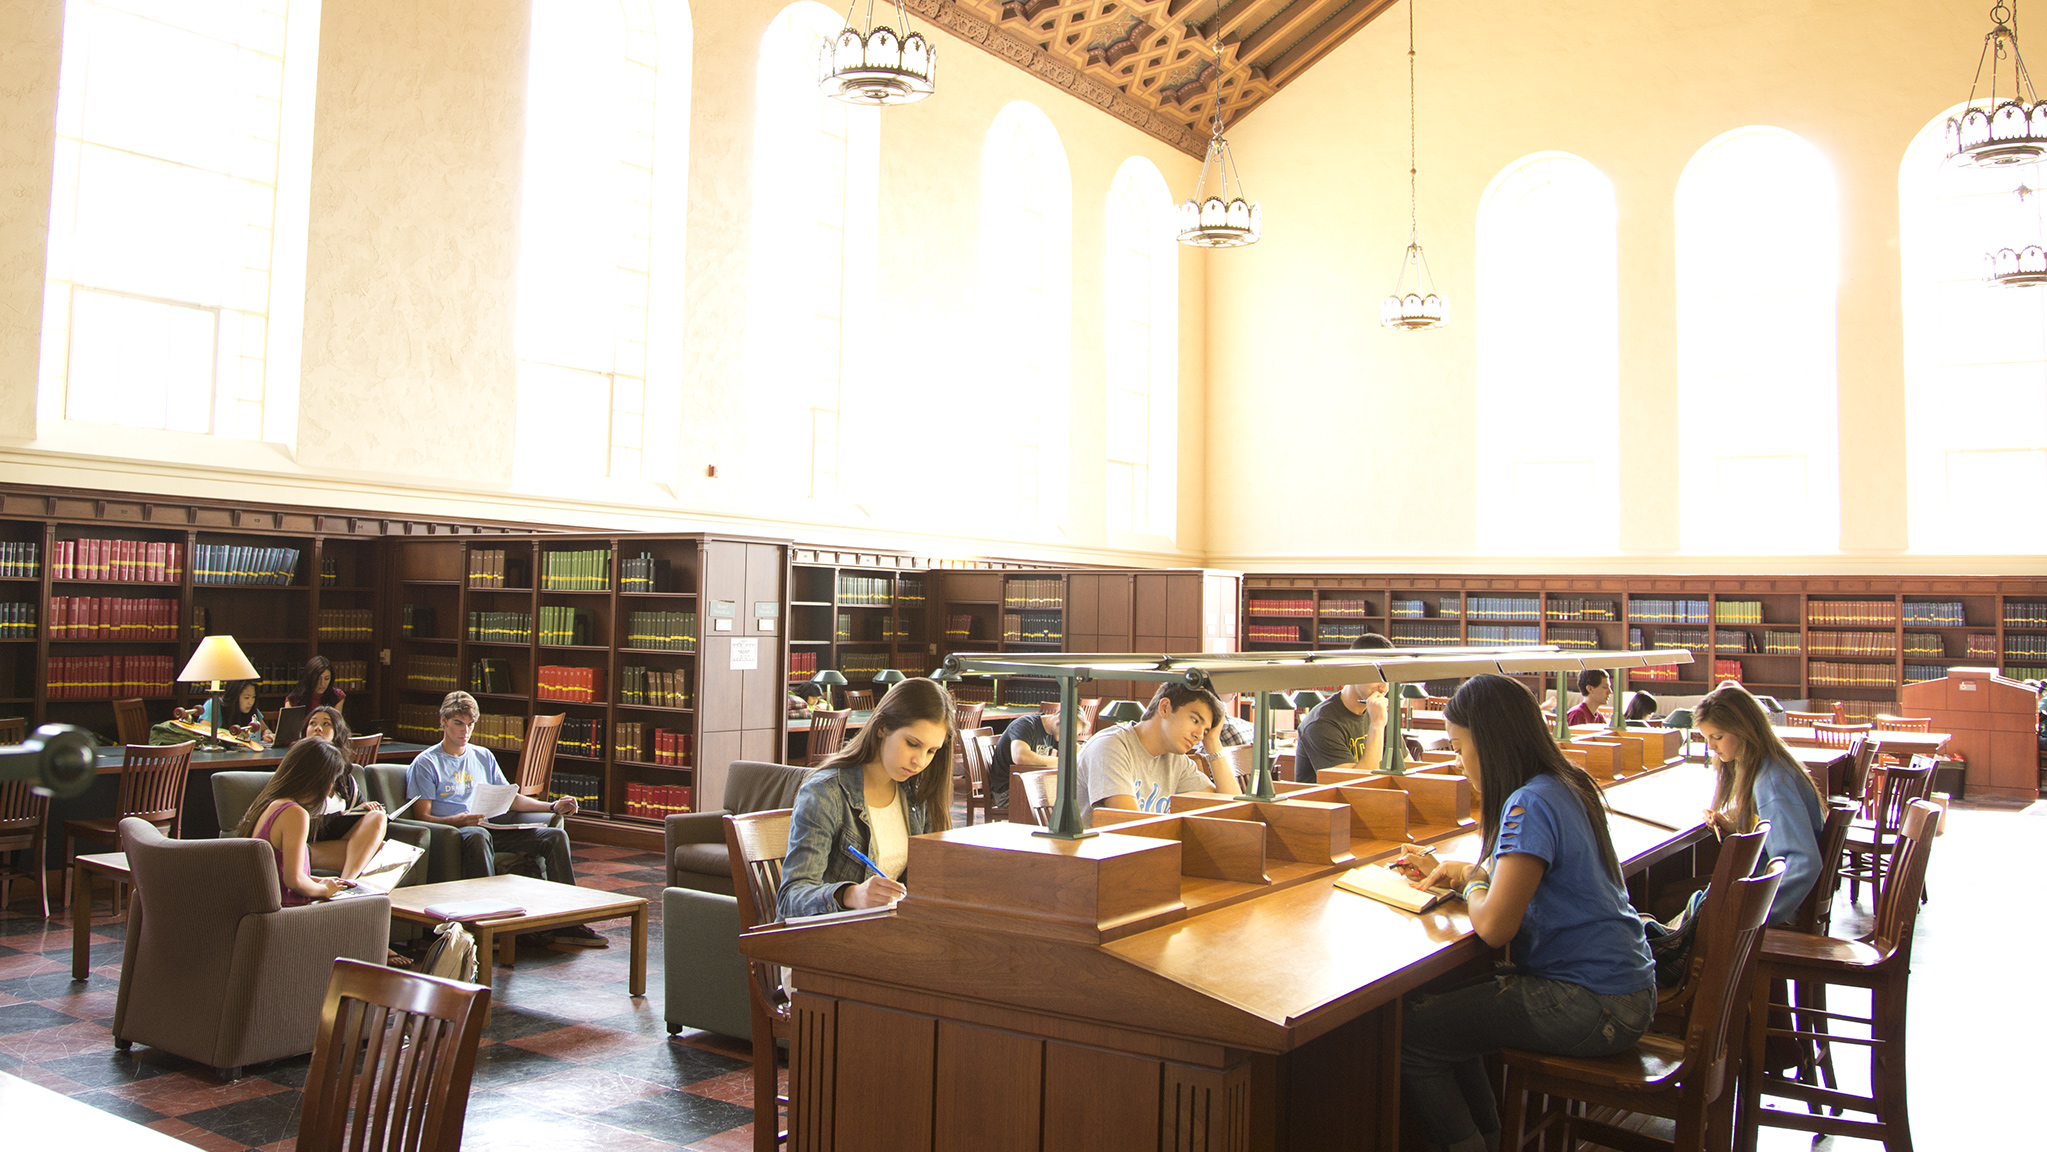 Students study in Powell Library, the main undergraduate library on campus.